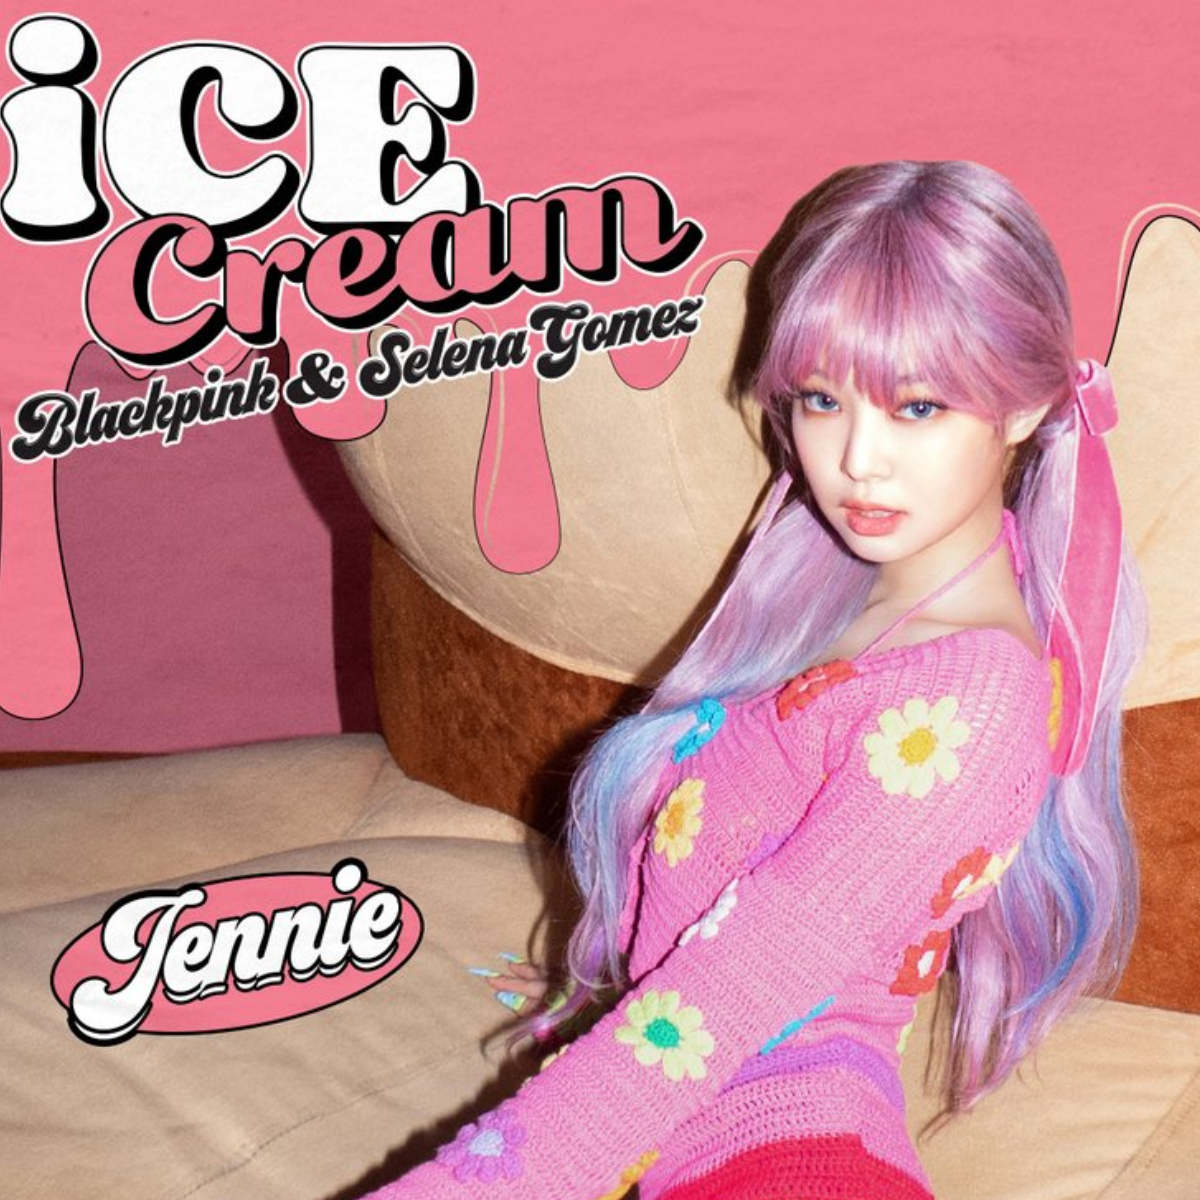 Blackpink Ft Selena Gomez Ice Cream Jennie Channels Her Inner Barbie In D3 Poster We Re In Awe Of Her Hair Pinkvilla